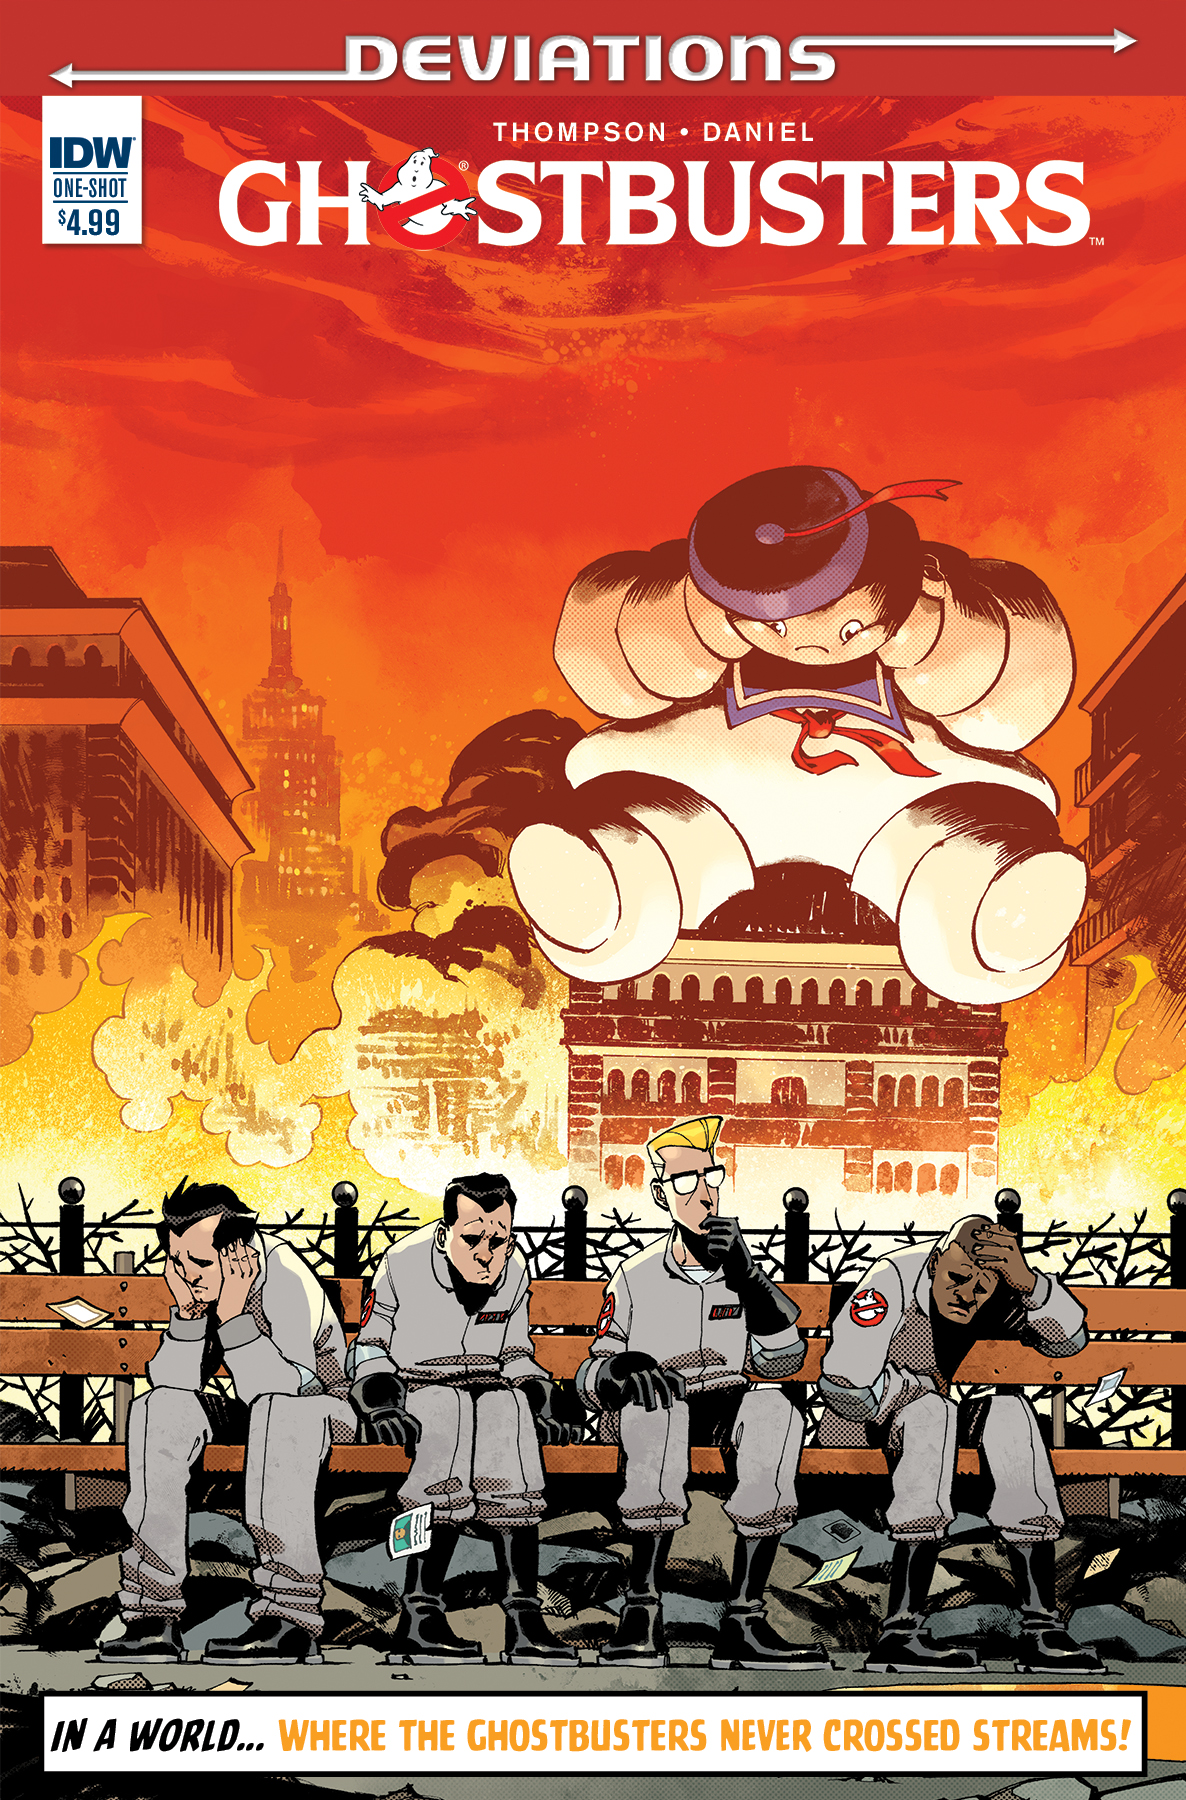 Ghostbusters Deviation Cover